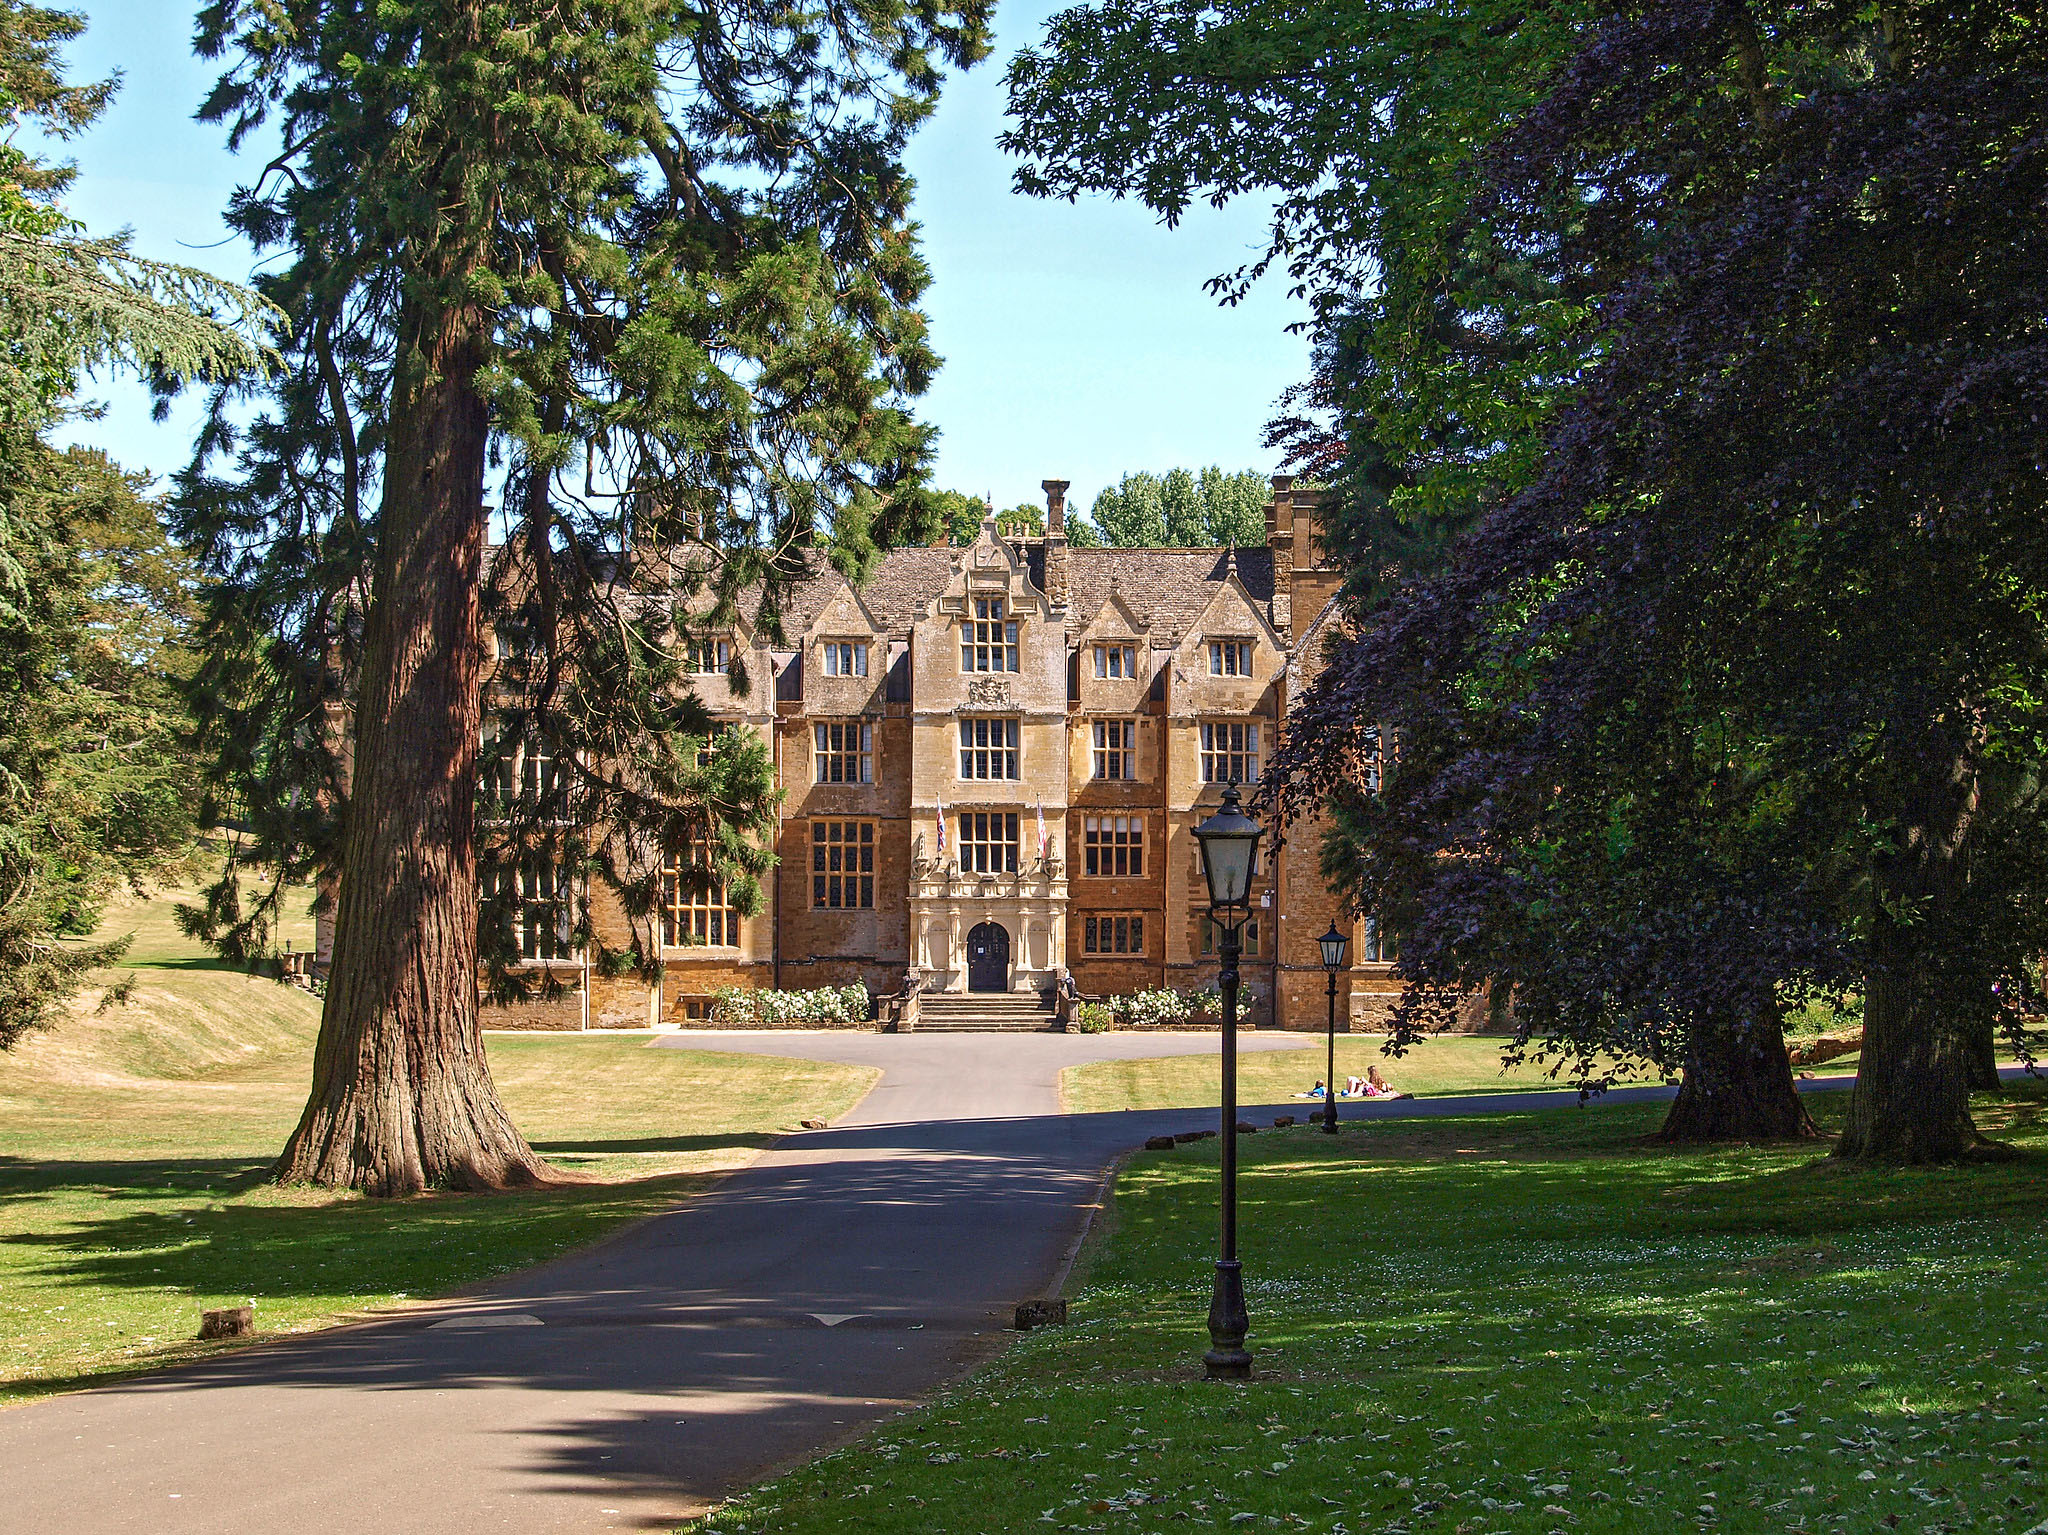 Wroxton Abbey college, Wroxton, Oxfordshire by Andrew S Brown.jpg